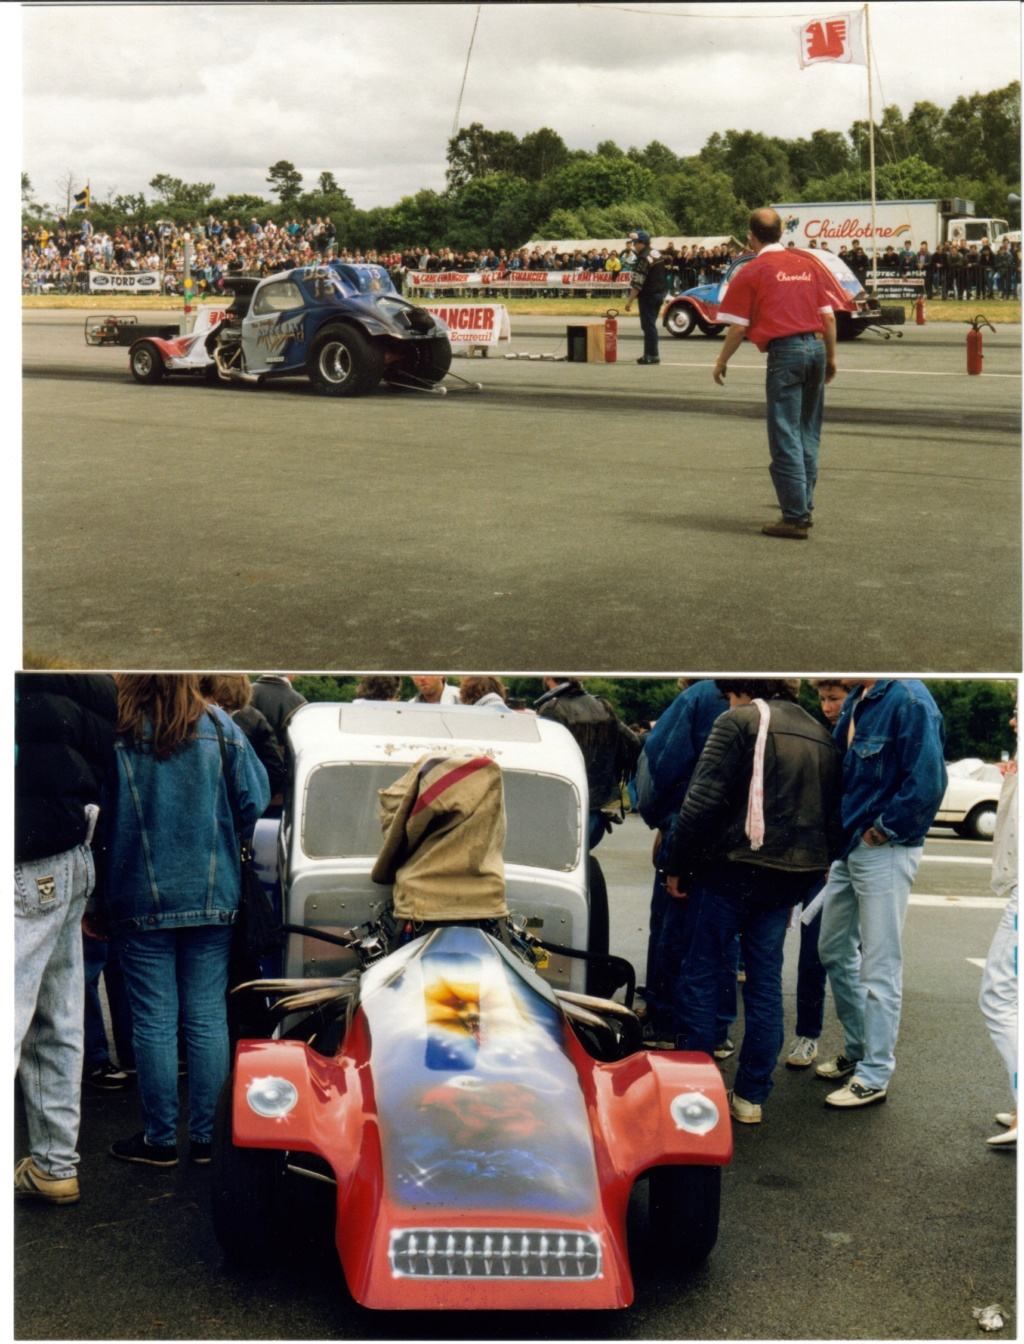 dragster guiscriff 1989 Drags_11